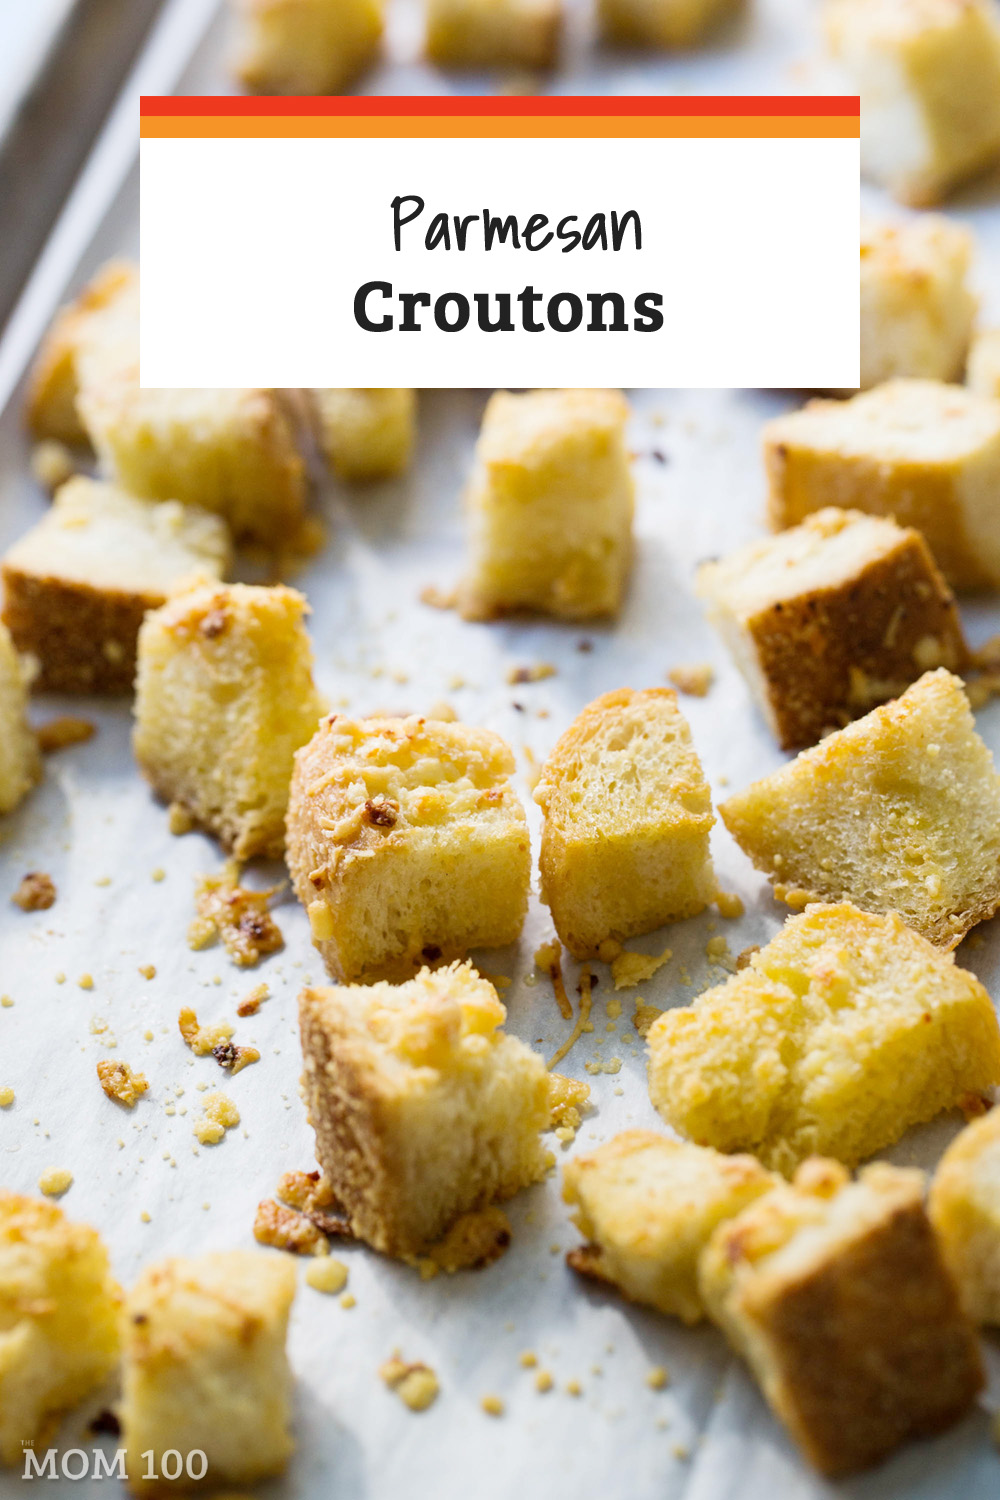 Croutons from a box will never measure up again after you've made these Parmesan Croutons. As seen on The Today Show.